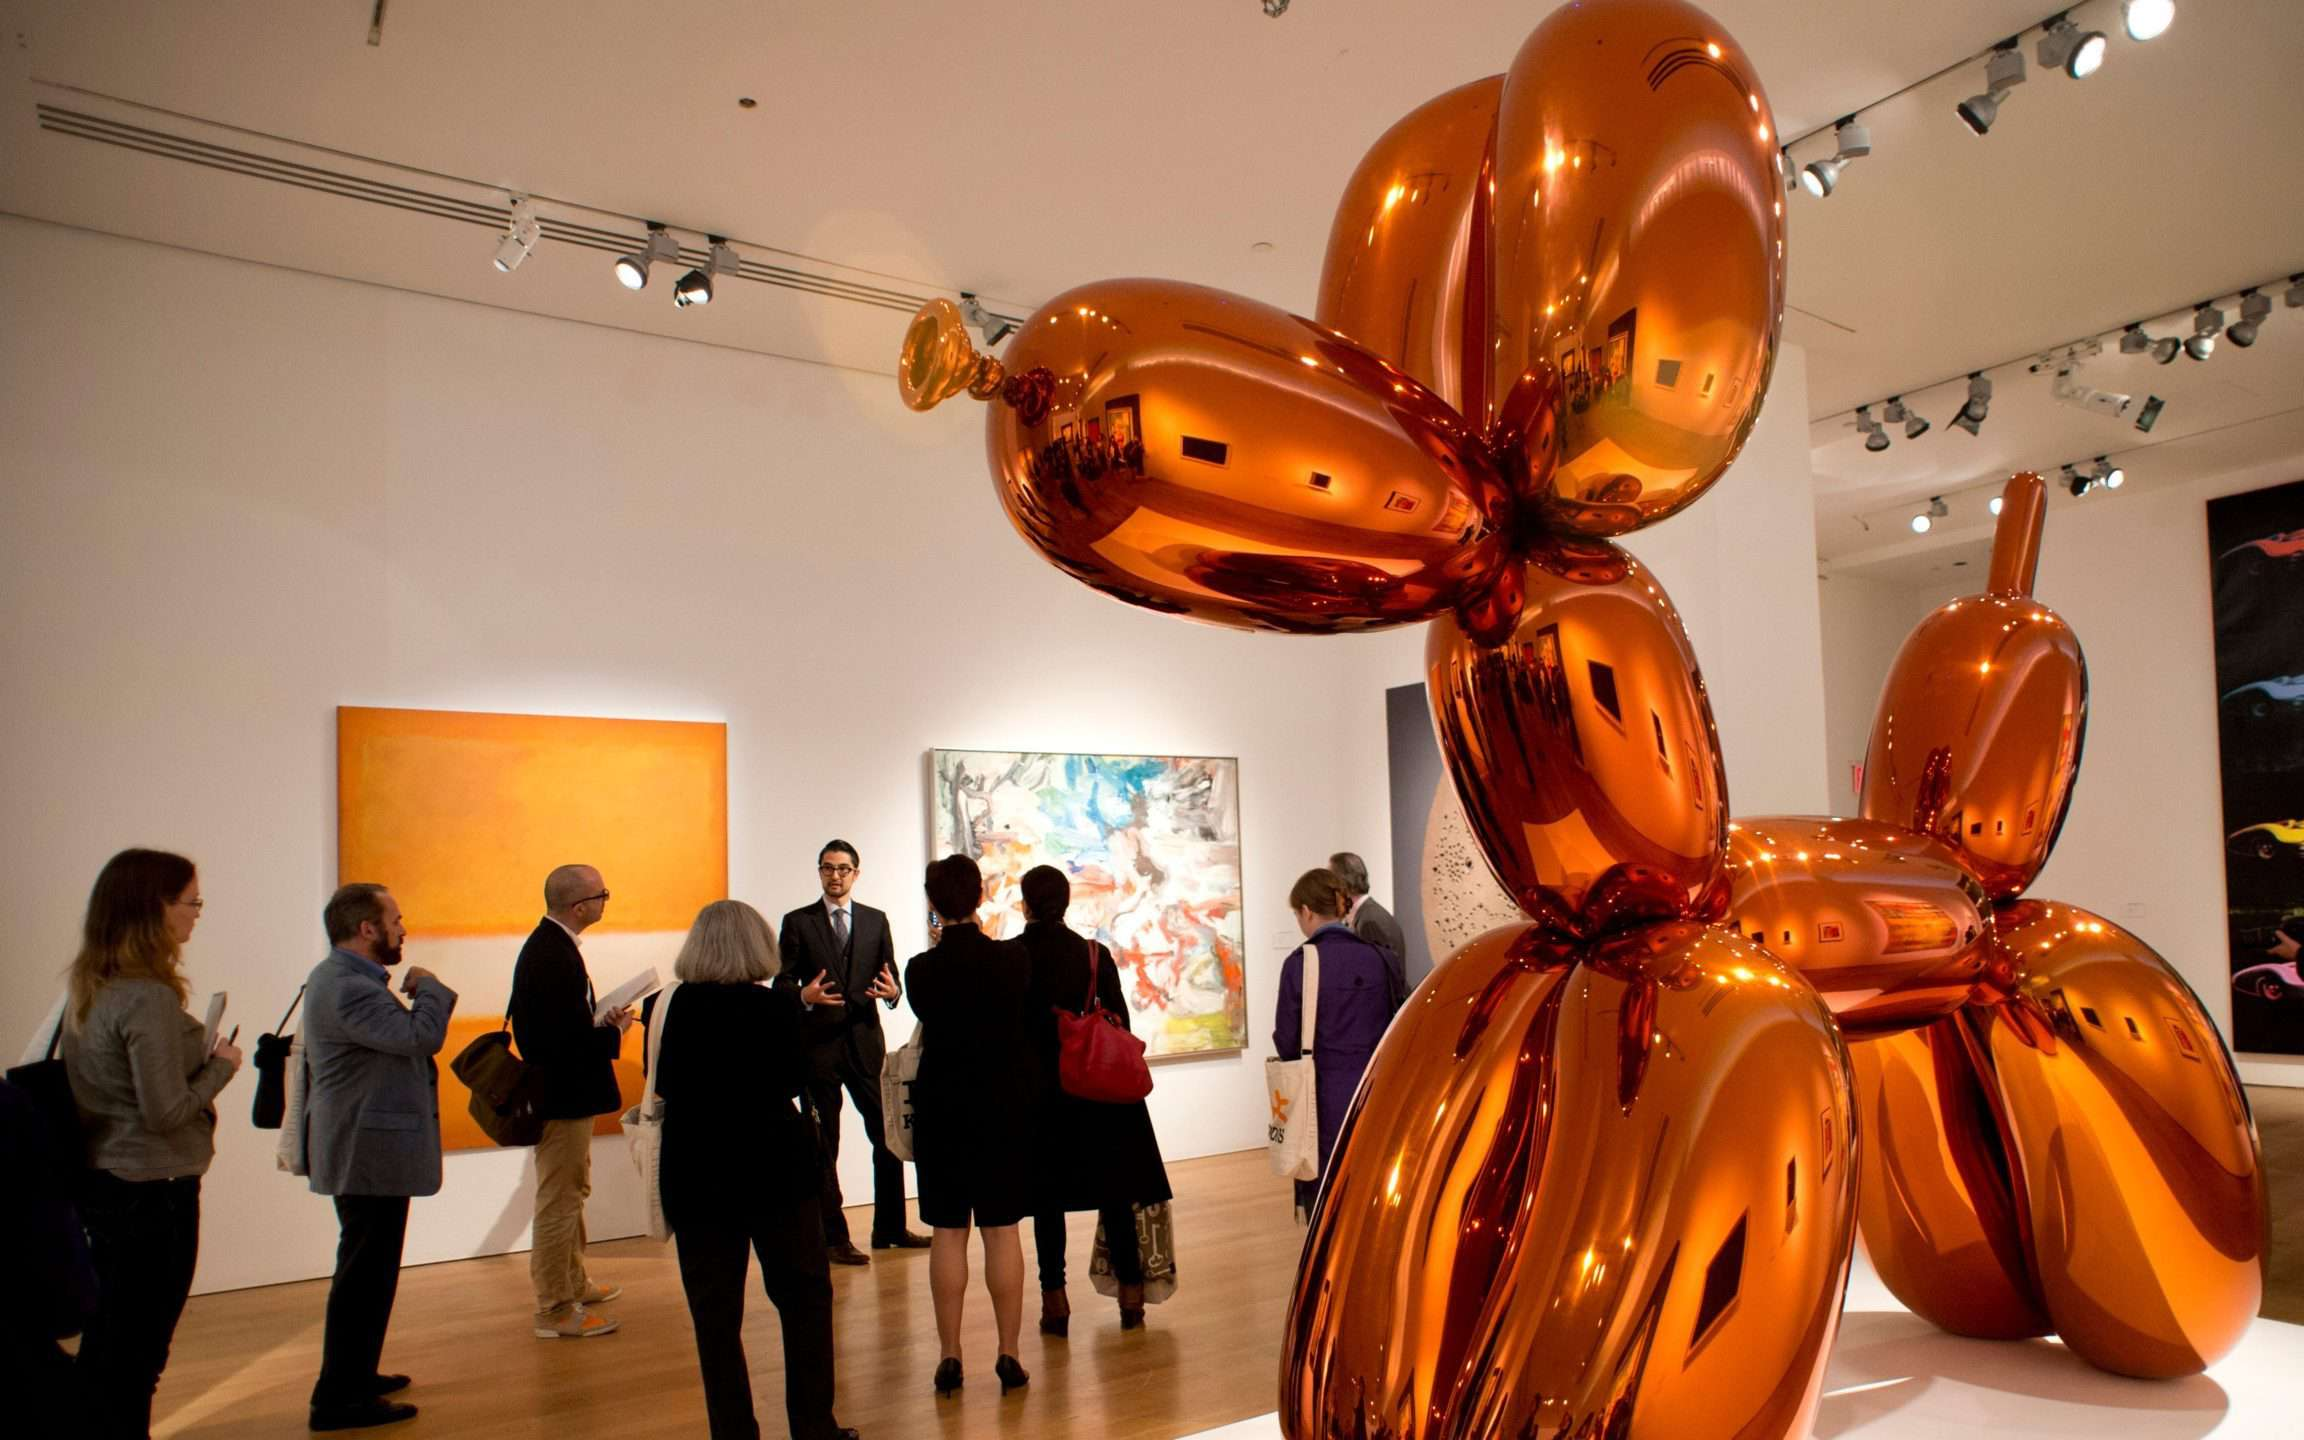 Jeff Koons Dog Balloon (Orange) (1994-2000). Venduto nel 2013 per oltre 53 milioni di dollari. ©Jeff Koons